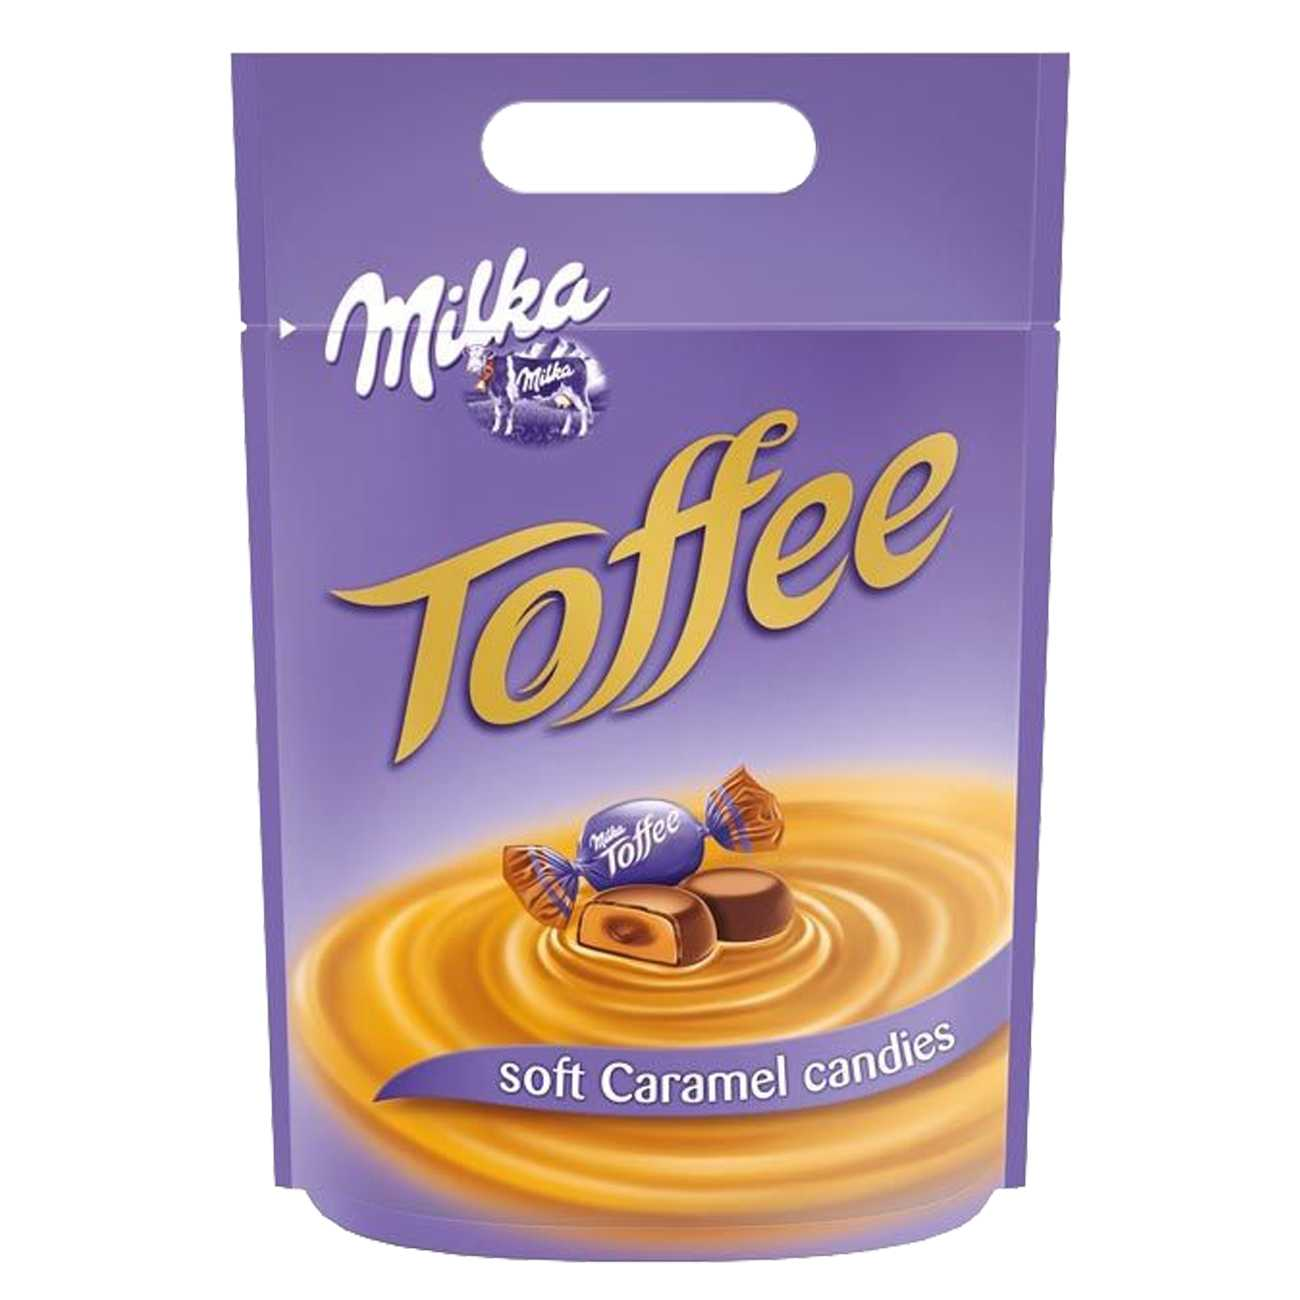 TOFFEE SOFT CARAMEL CANDIES 440 G